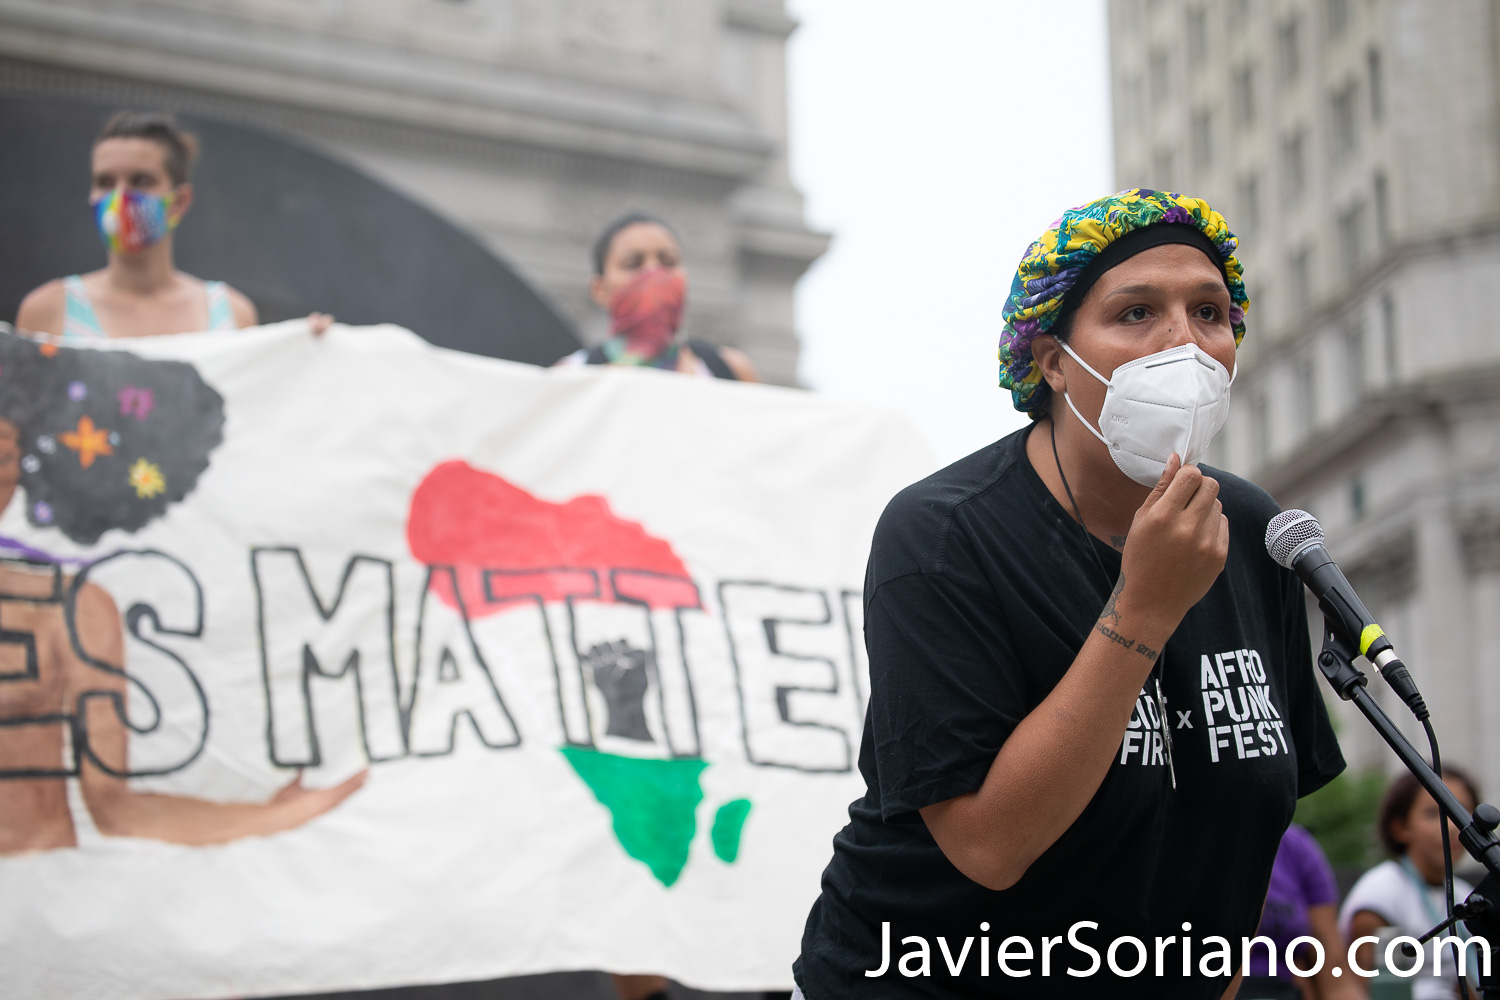 """Thursday, July 30, 2020. Manhattan, New York City - Rally and March: """"Not in our city. Not on our watch."""" Demonstrators gathered at Foley Square Park where they had a rally. Speakers spoke in support of undocumented immigrants, Trans women, Trans men and the Black community, in general. After the rally, protesters marched to Park Row and Worth St where activists staged a Die-in for victims of police brutality in New York and in the country. Demonstrators also demanded the resignation of the New York City Police Commissioner, Dermot Shea. Photo by Javier Soriano/www.JavierSoriano.com"""